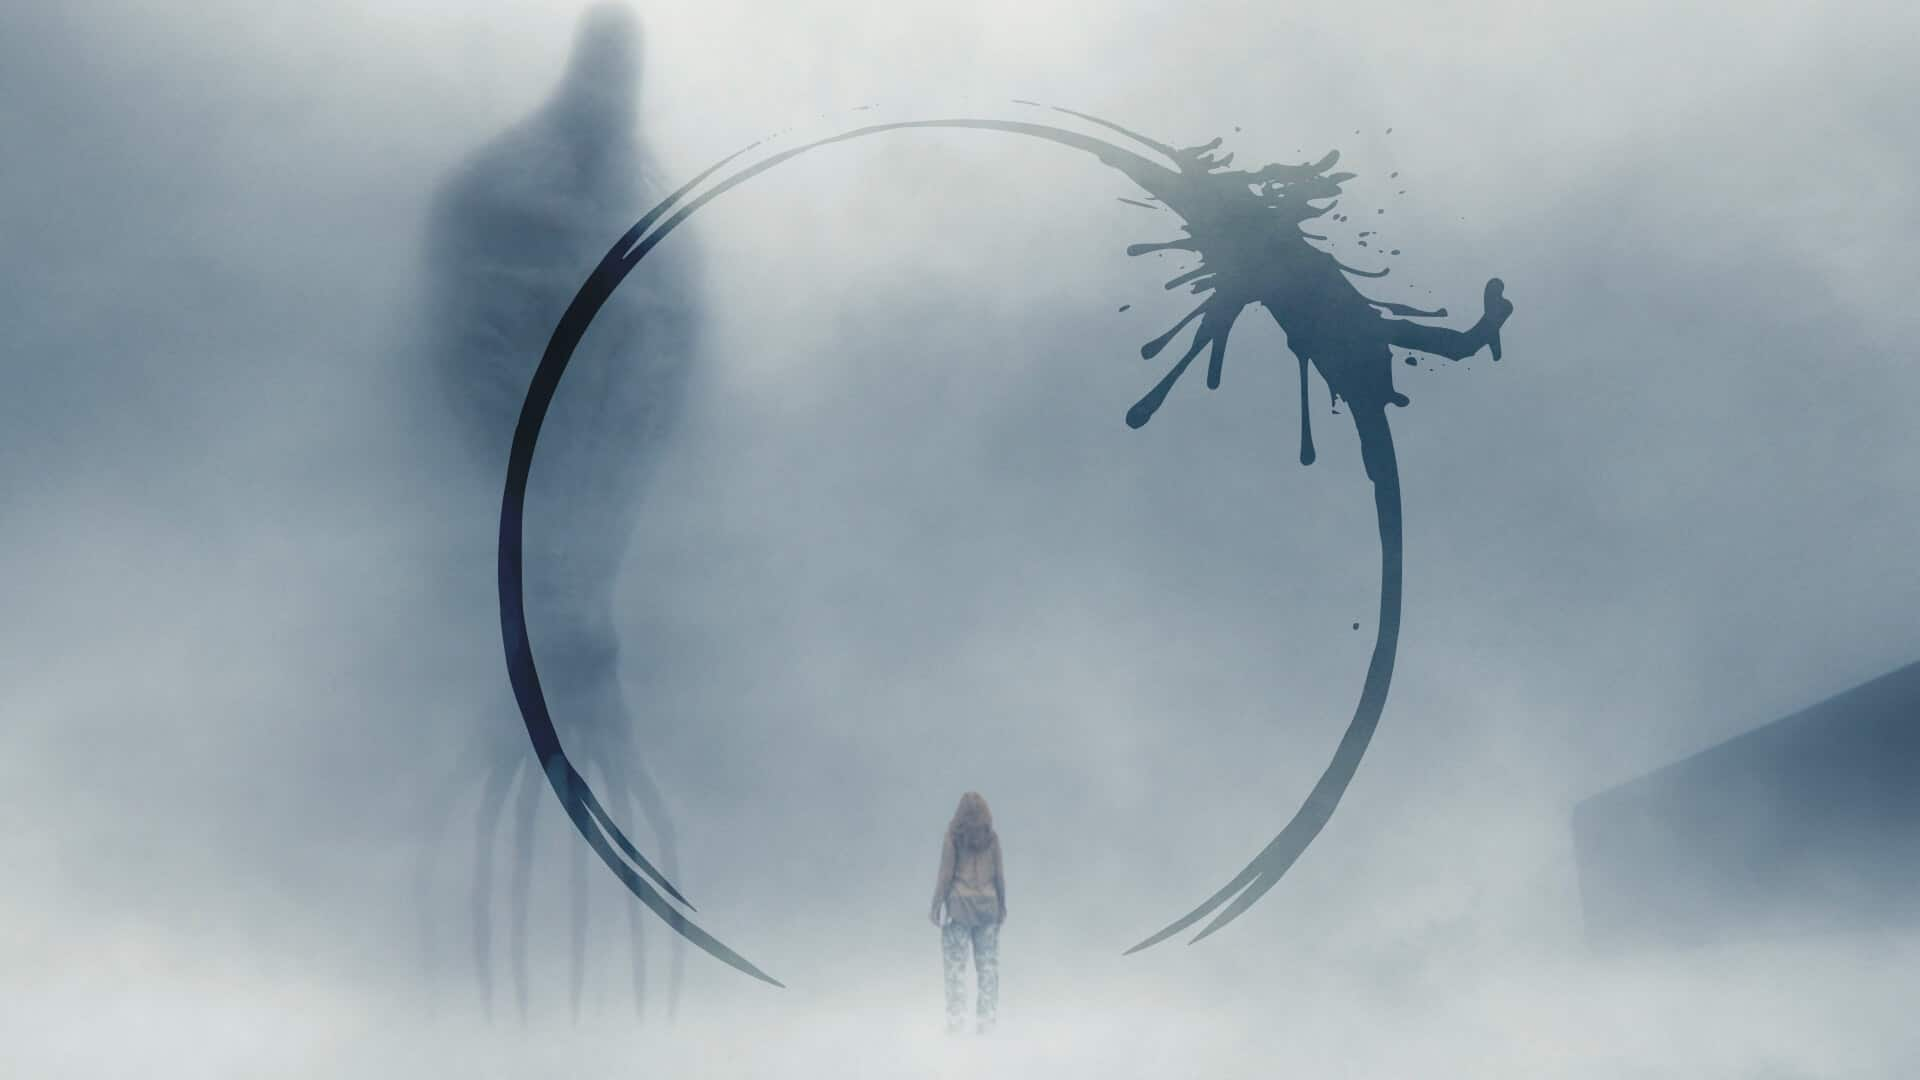 Arrival Video Essay - How to Balance Fear and Intrigue